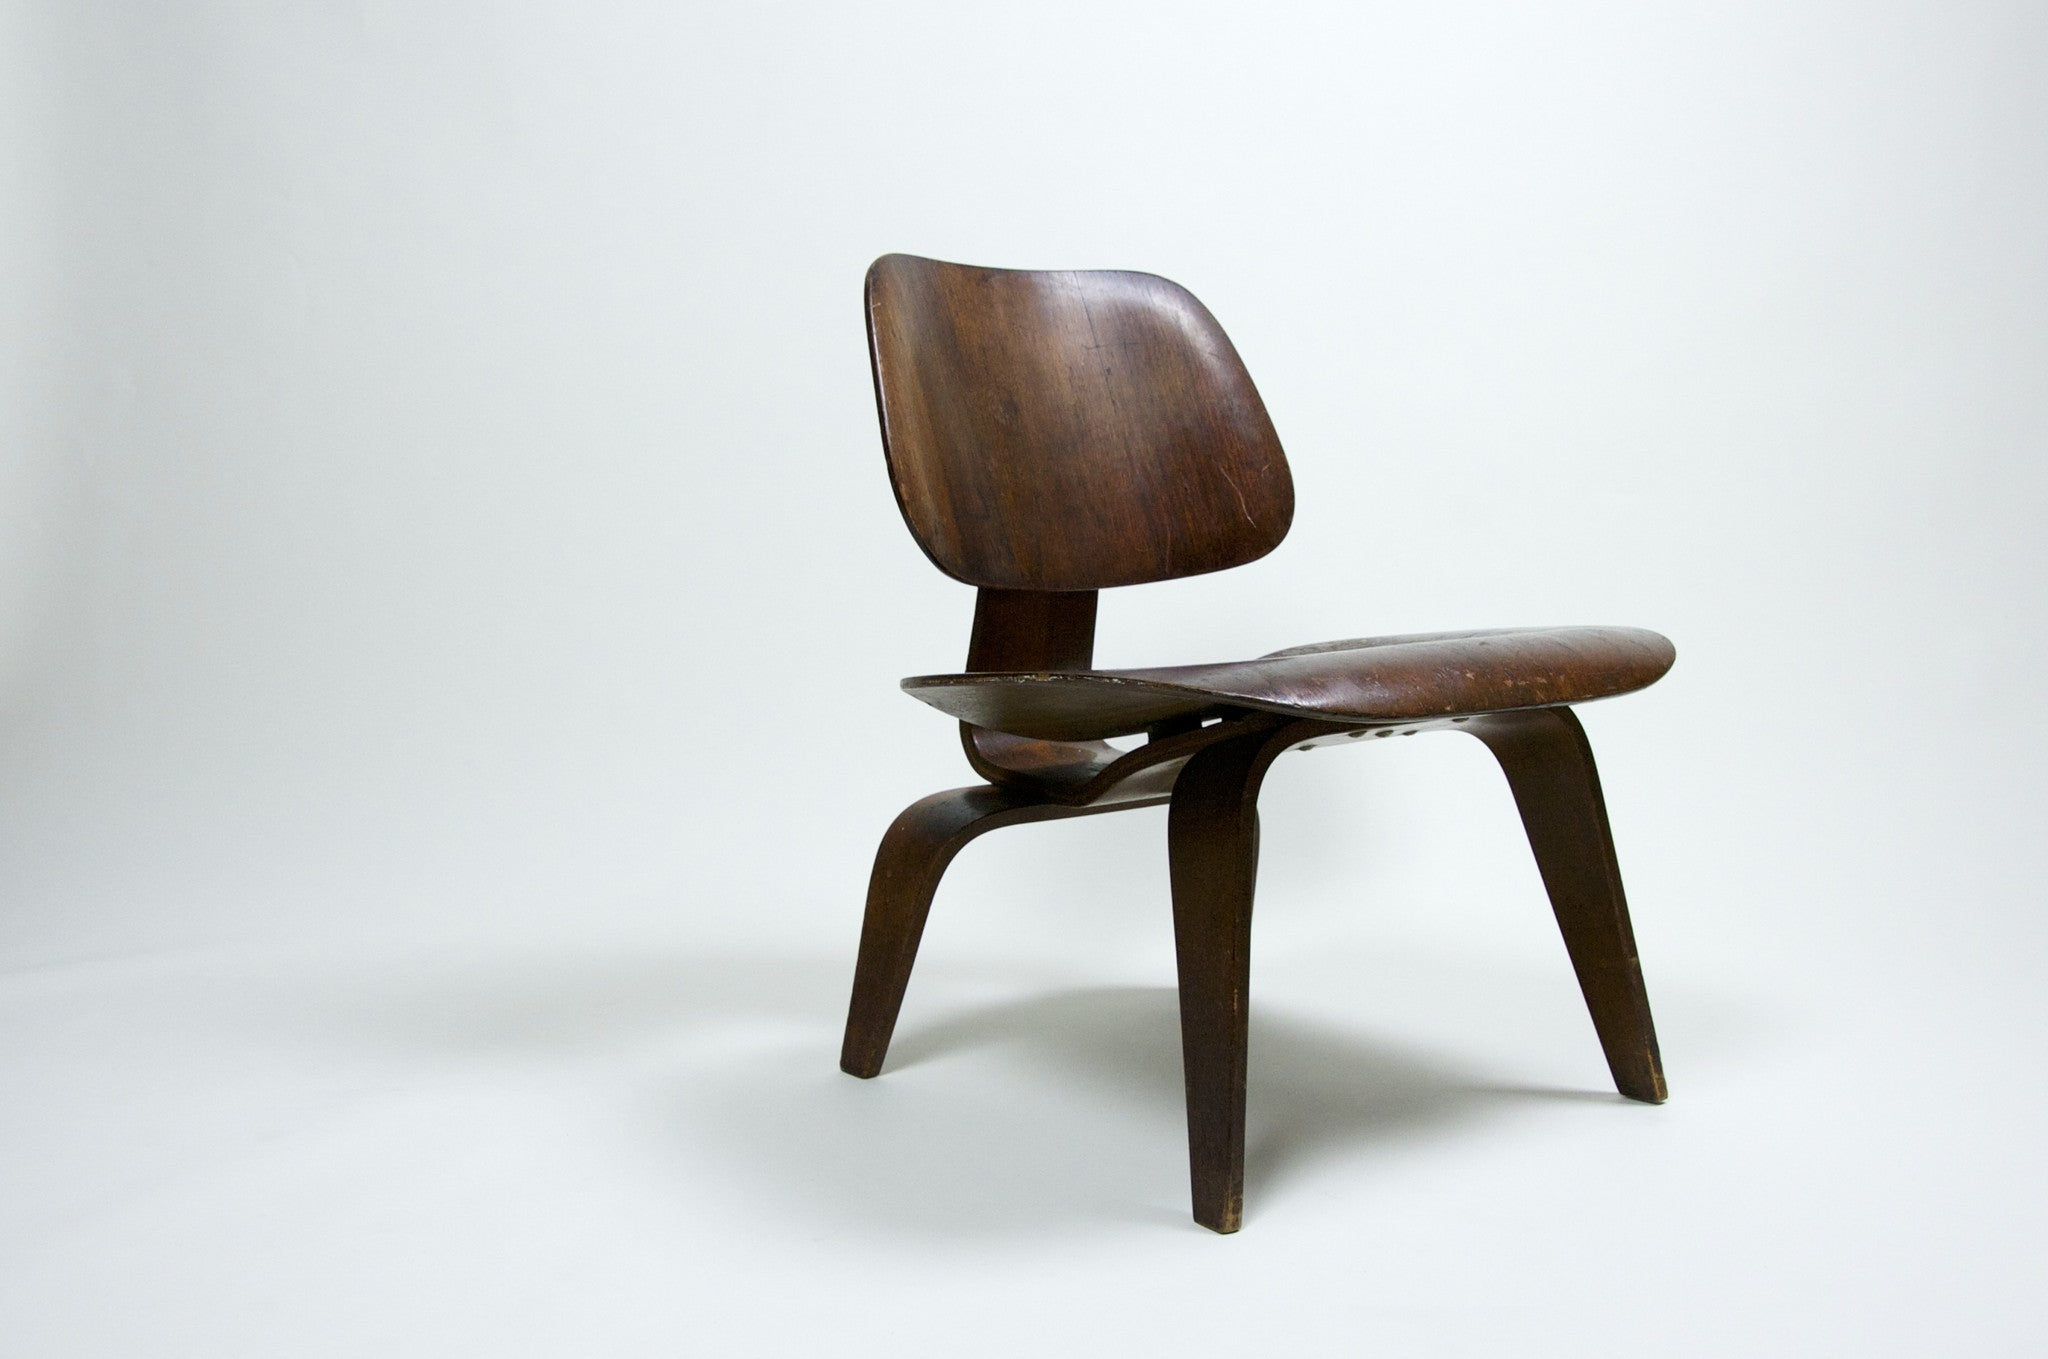 SOLD 1947 Eames Evans LCW Lounge Chair